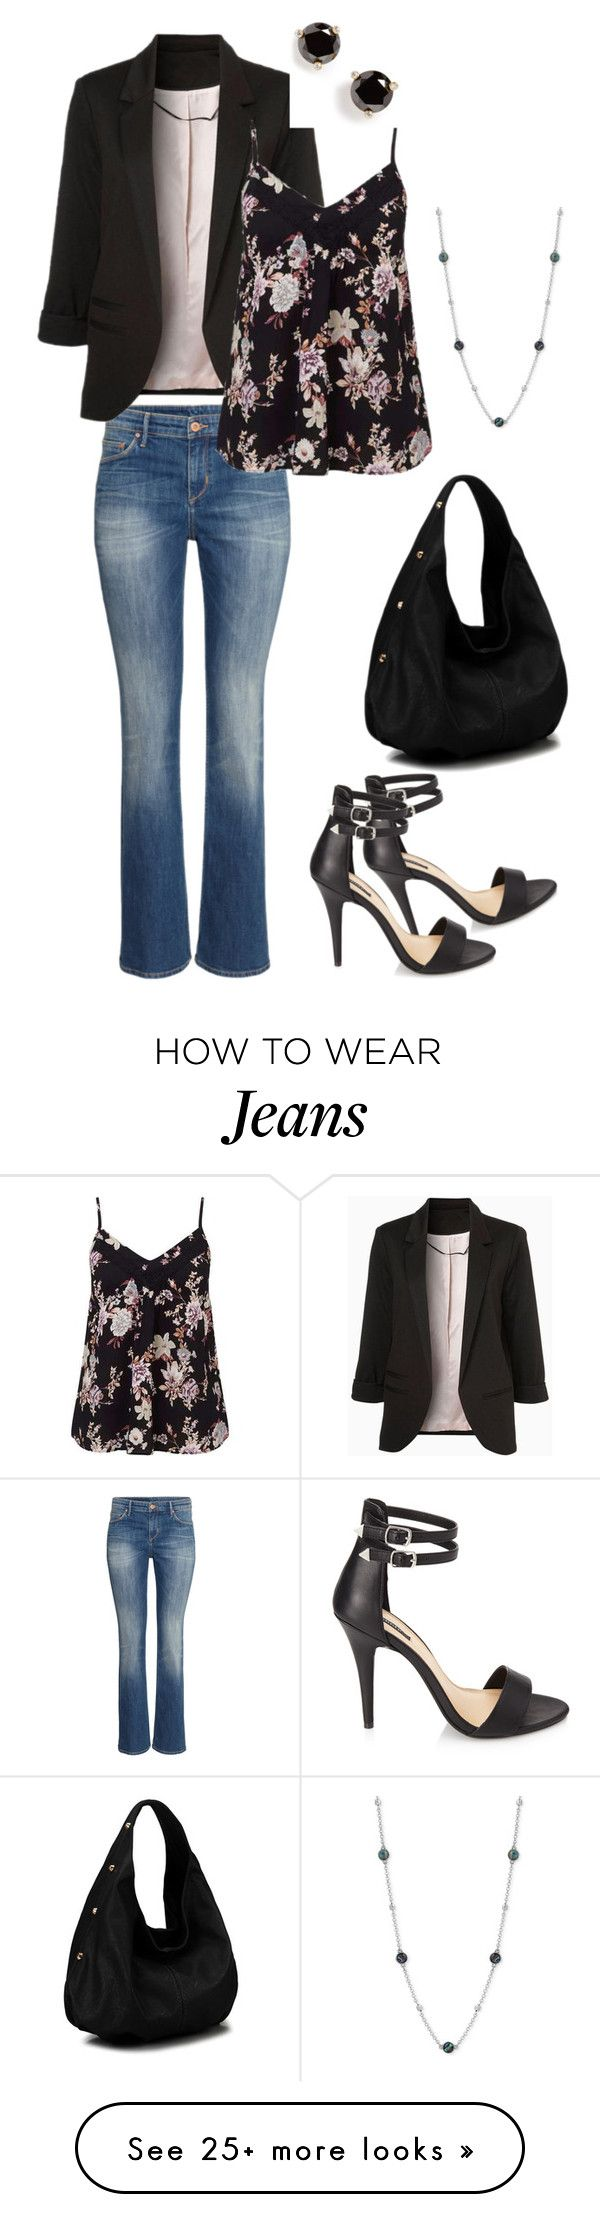 """""""Casual Friday Dressy Jeans"""" by sassenachstudio on Polyvore featuring Forever 21, Miss Selfridge, Lucky Brand and Kate Spade"""